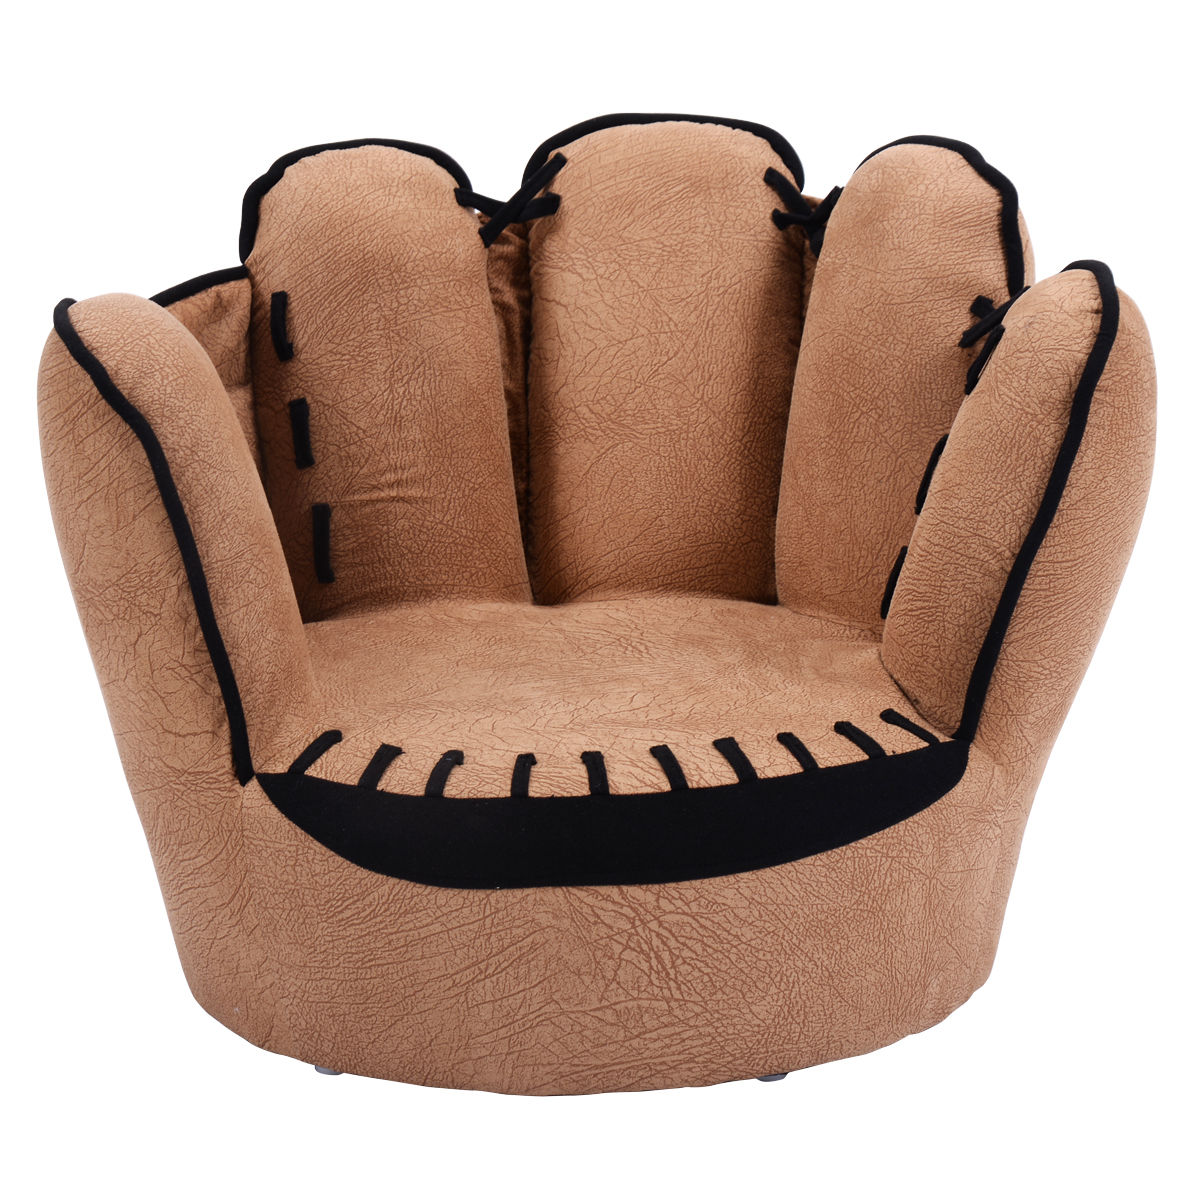 Costway Kids Sofa Five Finger Armrest Chair Couch Children Living Room Toddler Gift